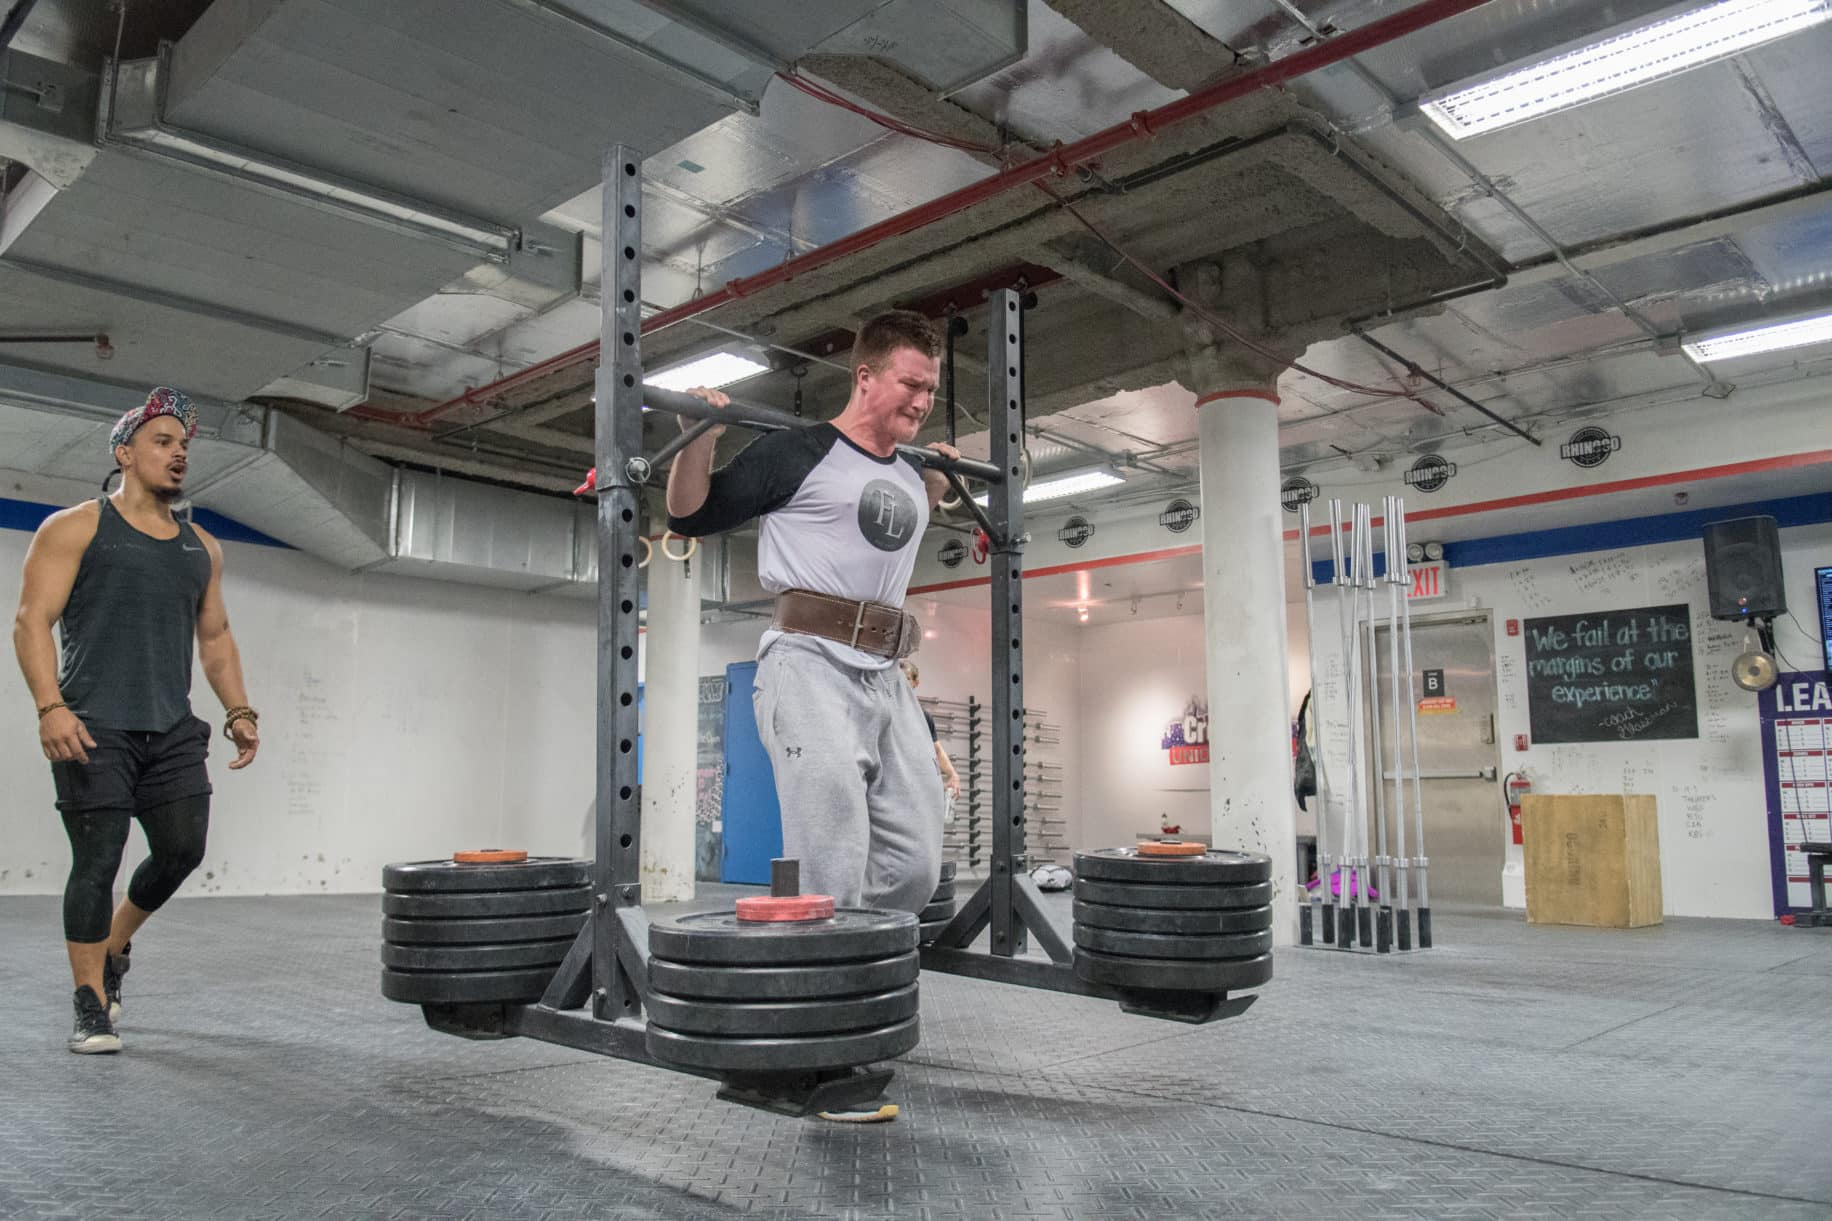 Rep Ranges for Strength, Hypertrophy, and Cutting - BarBend